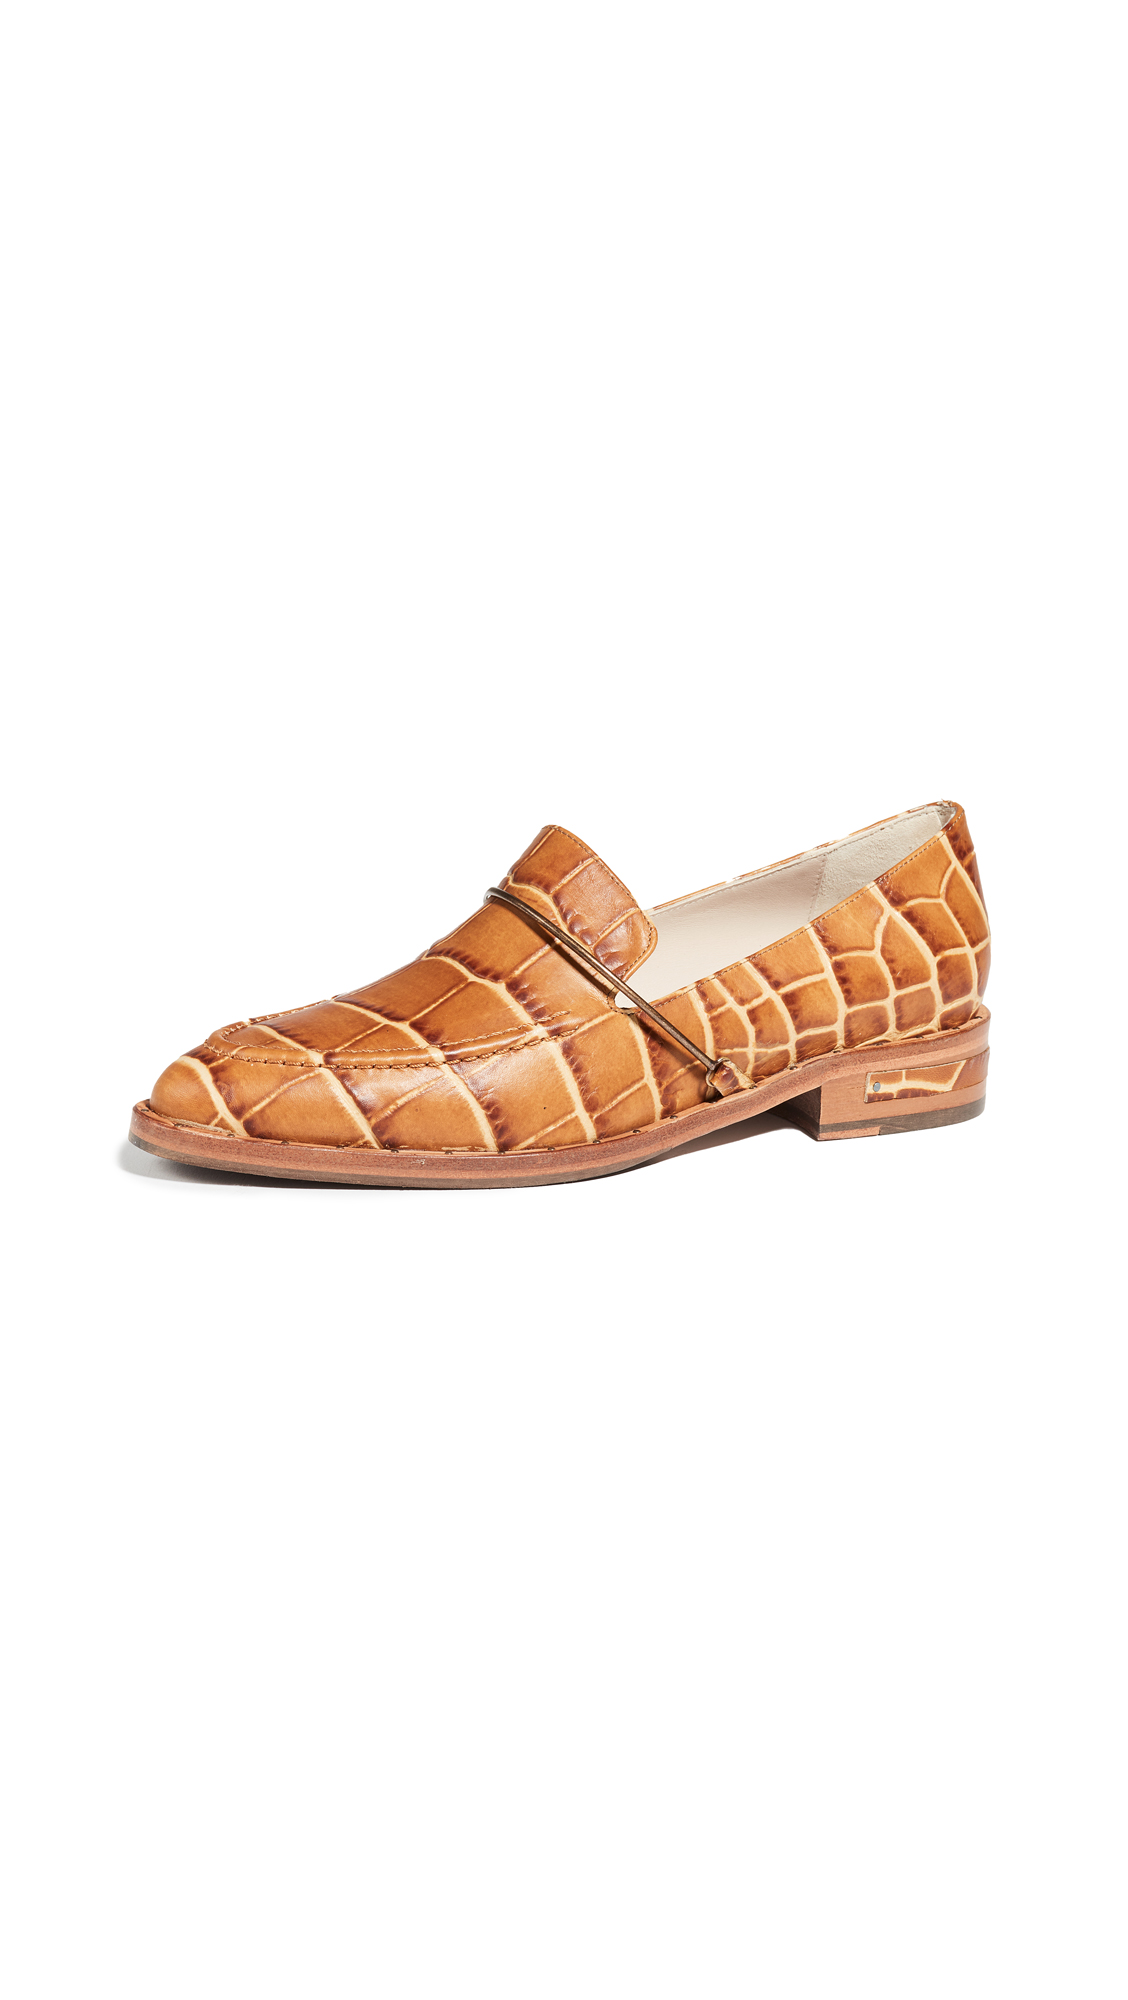 Buy Freda Salvador Light Loafers online, shop Freda Salvador